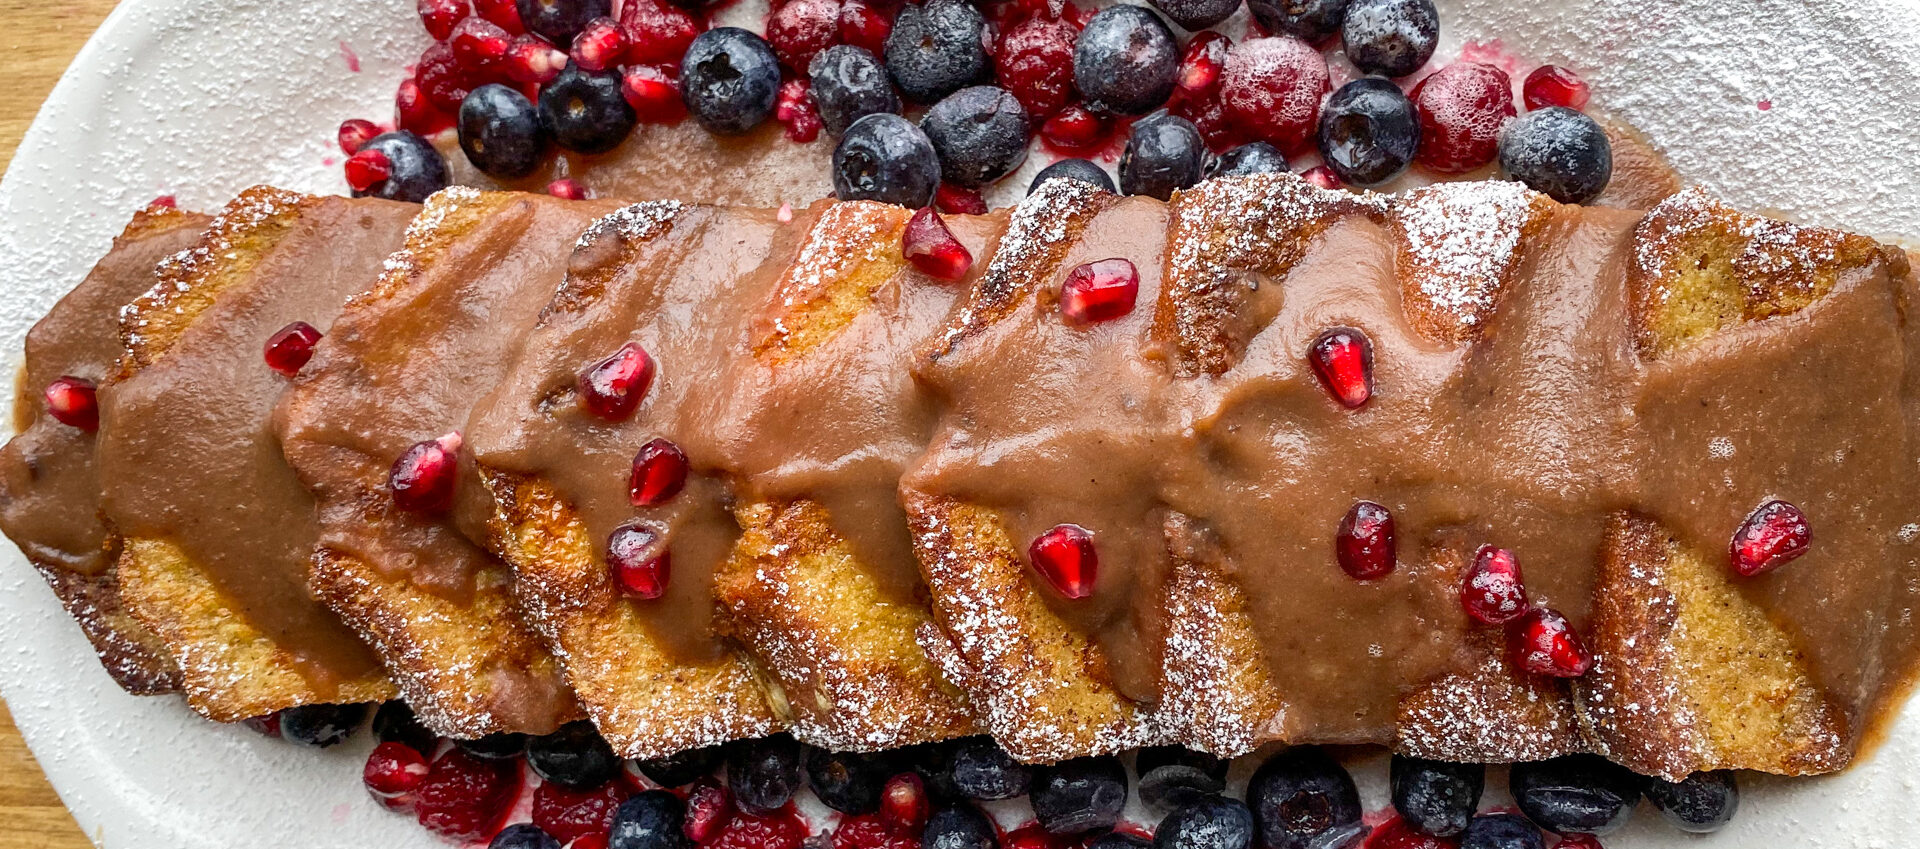 a beautiful platter of golden brown pound cake french toast with an assortment of berries and chestnut syrup drizzled on top